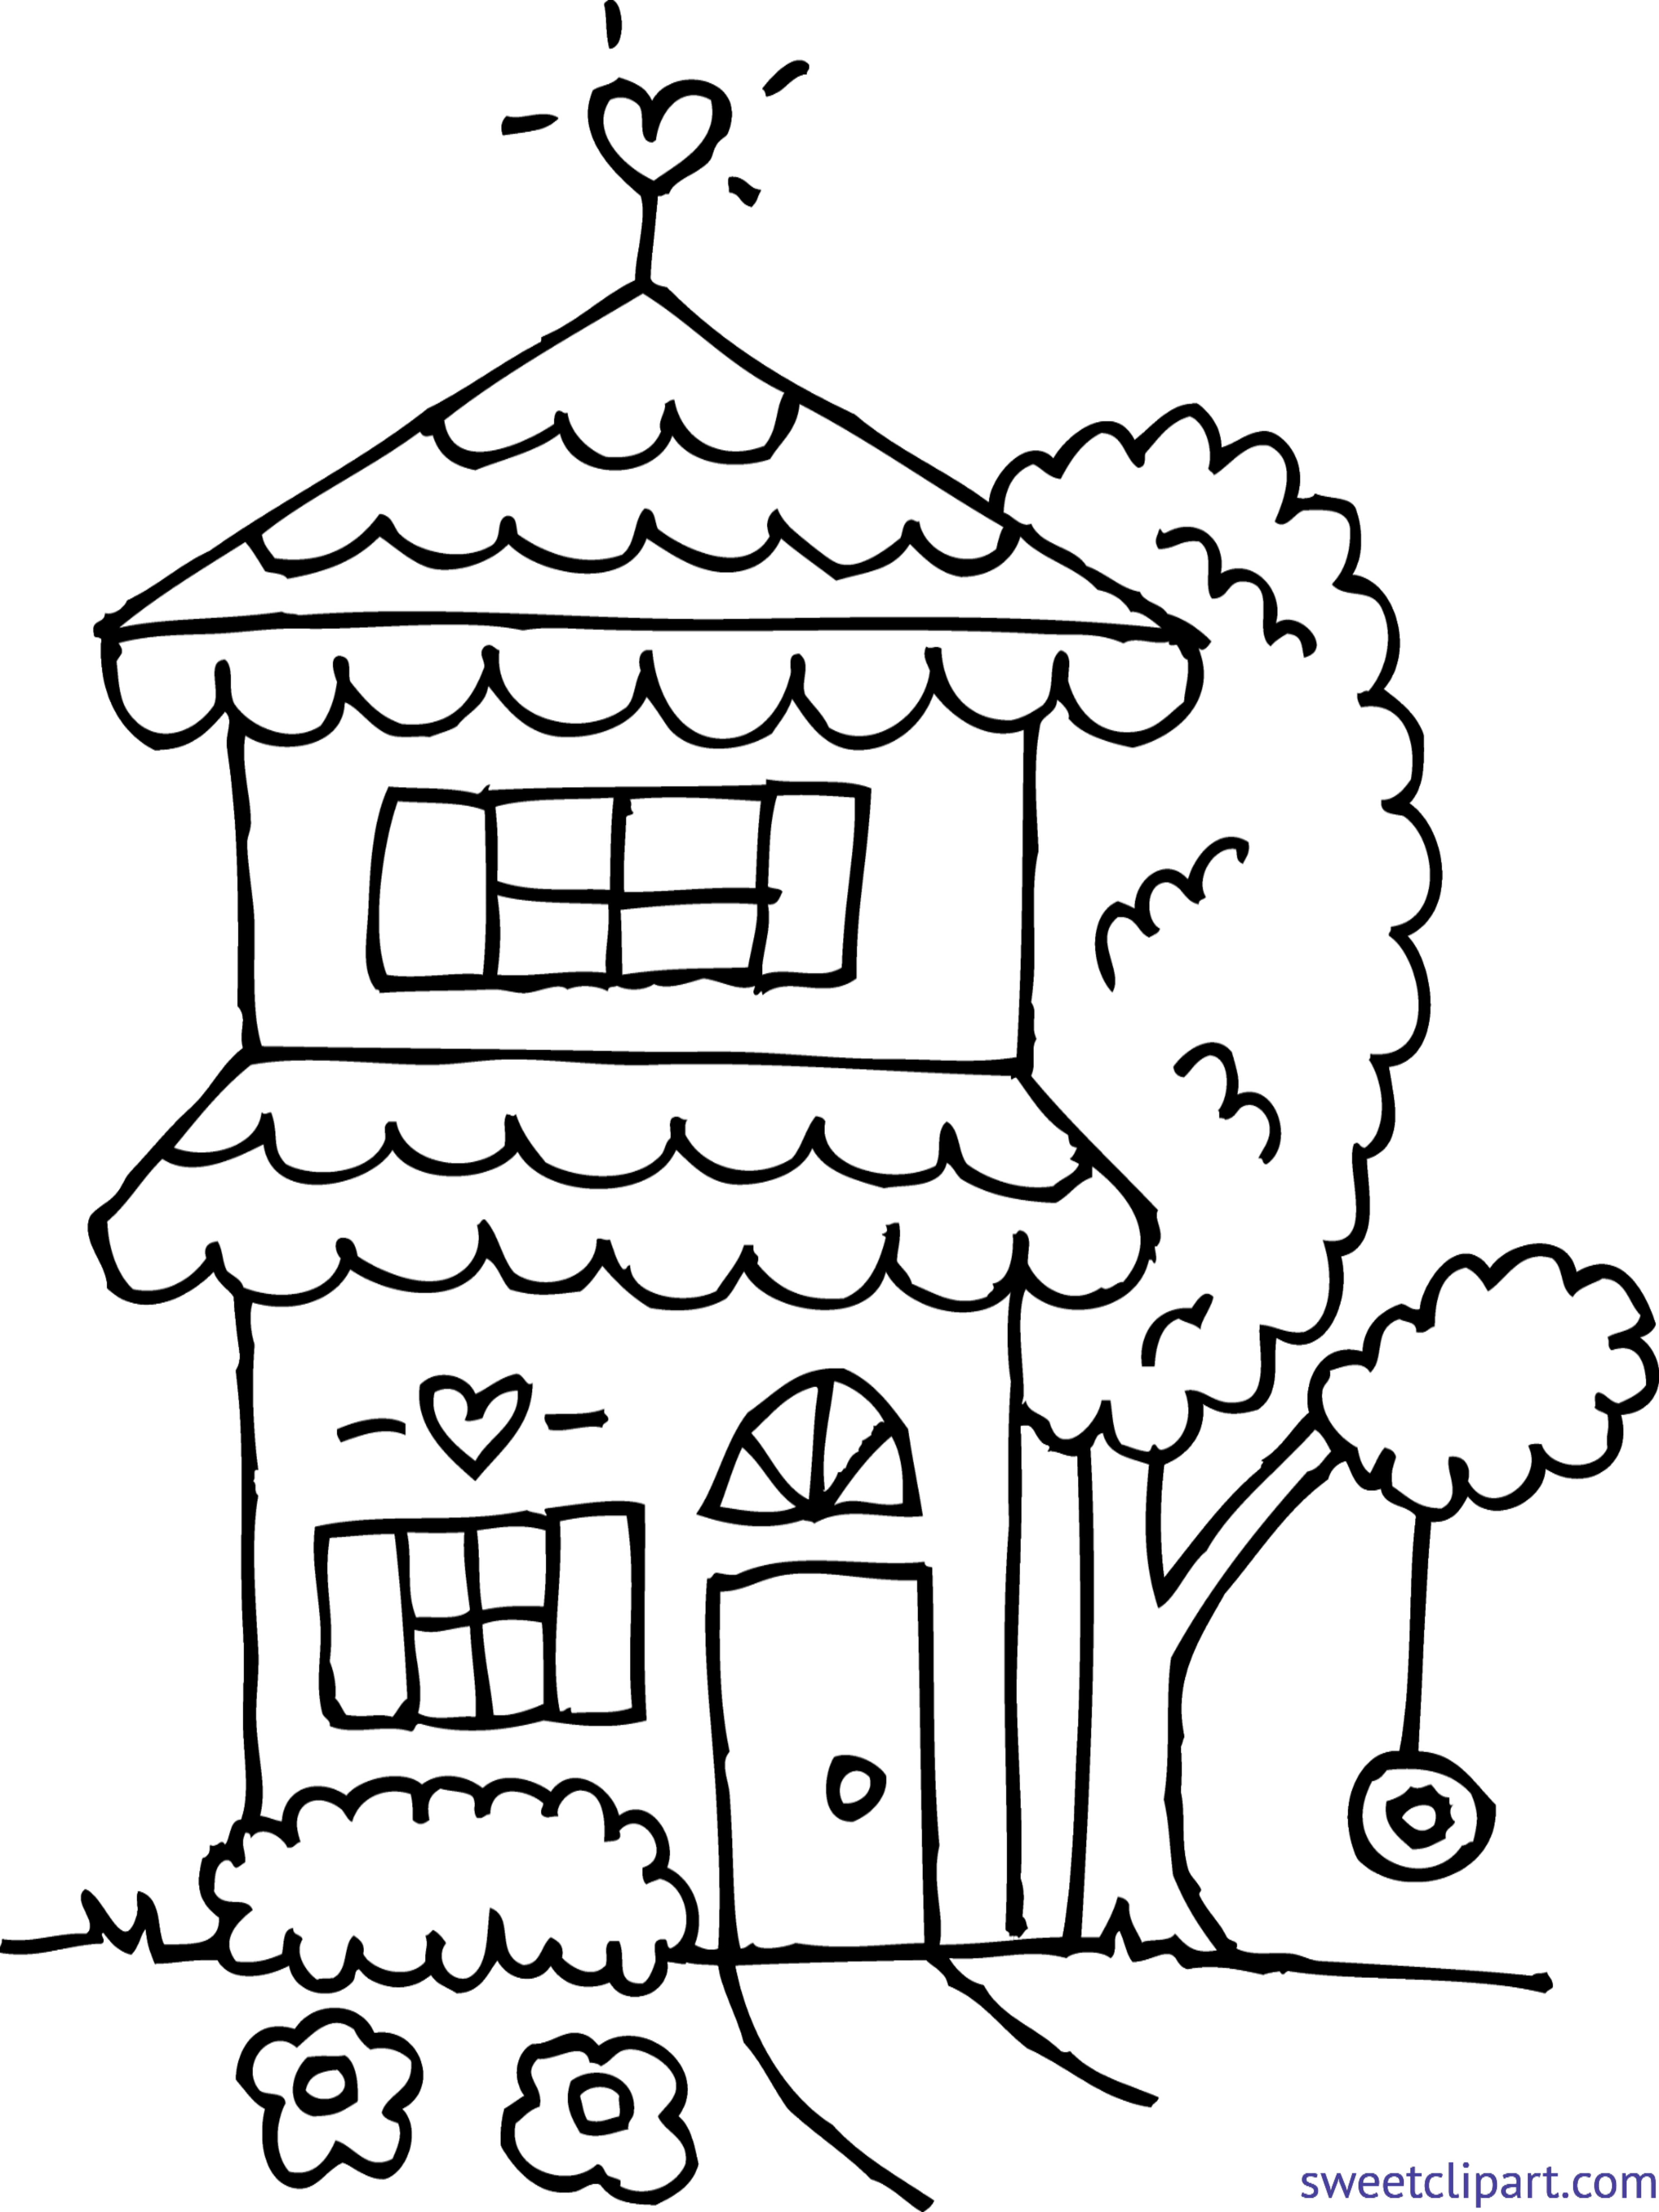 Cute house black and white clipart svg royalty free Cute House Drawing at GetDrawings.com | Free for personal use Cute ... svg royalty free